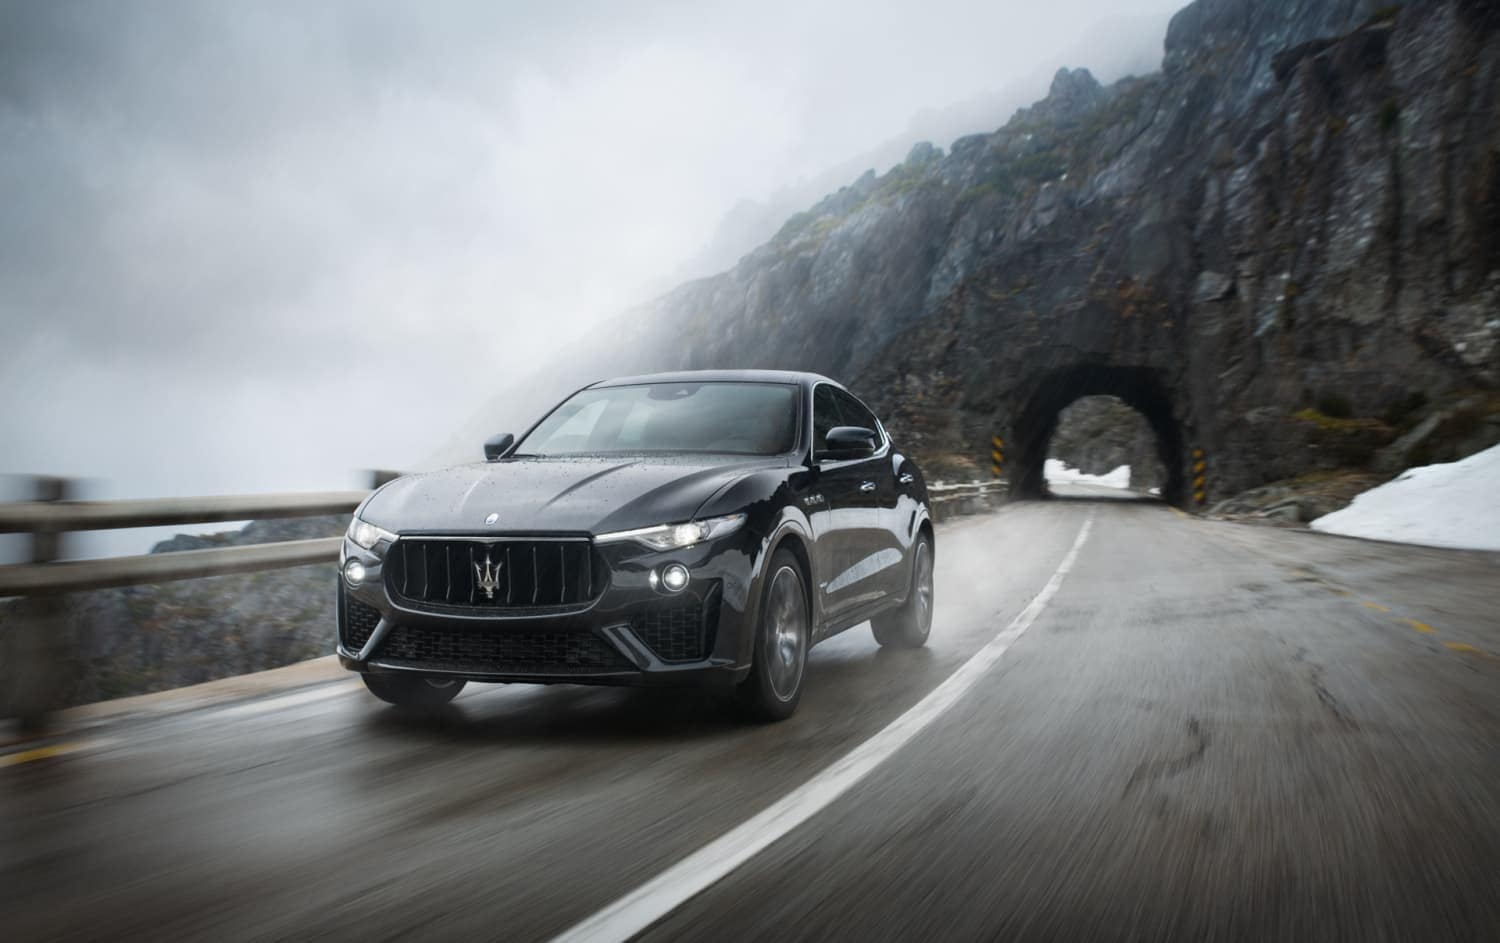 2019 Maserati Levante driving down road